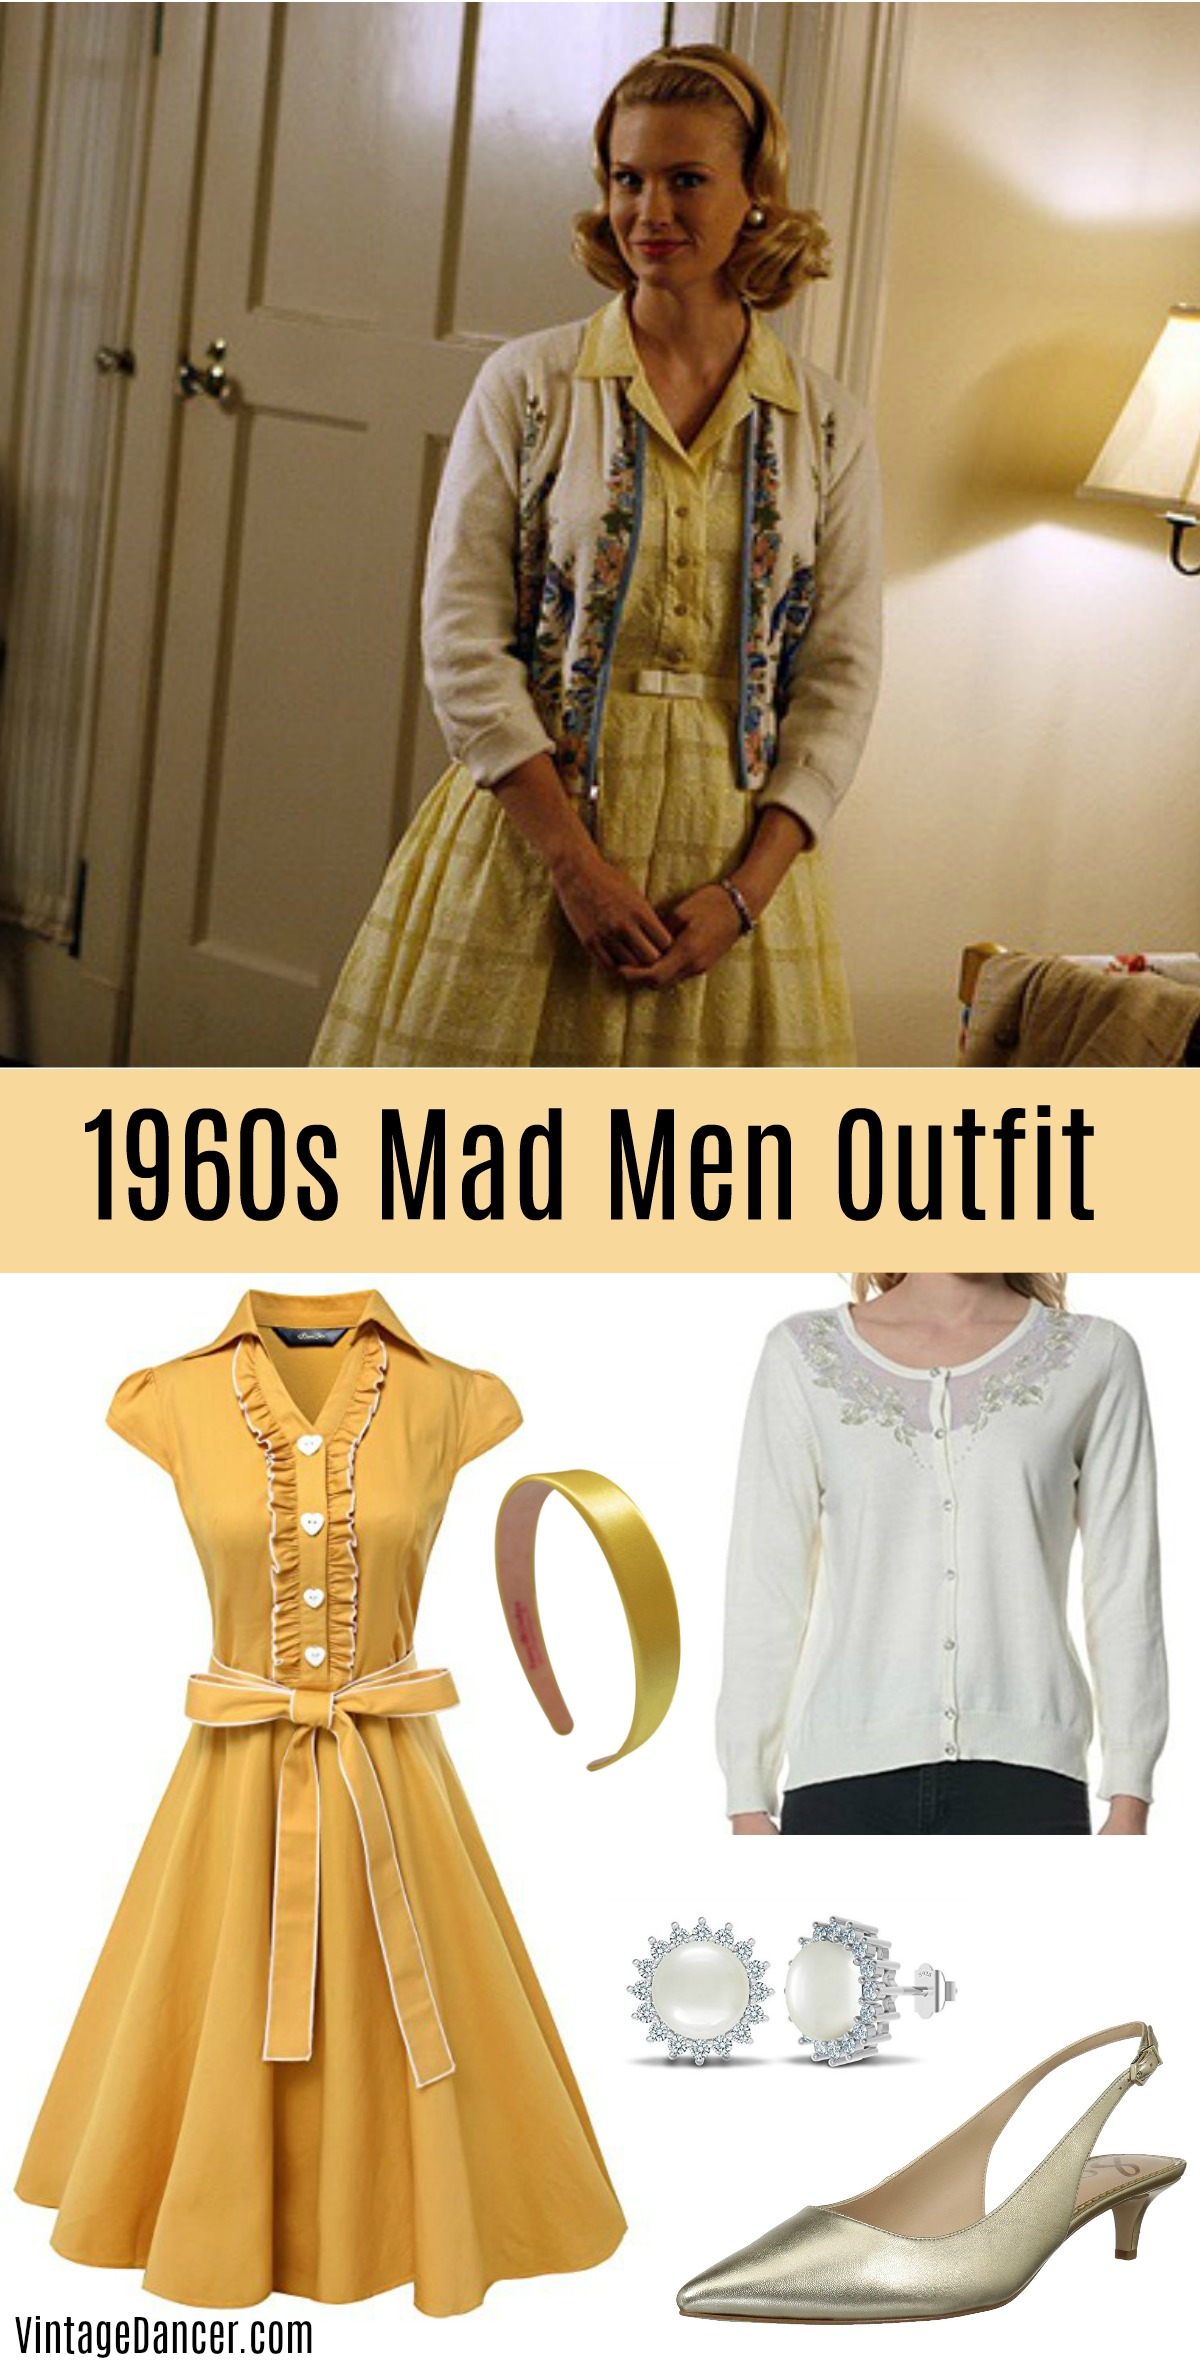 1960s Outfit Ideas |  Mod, Hippie, Casual, Housewife, Party